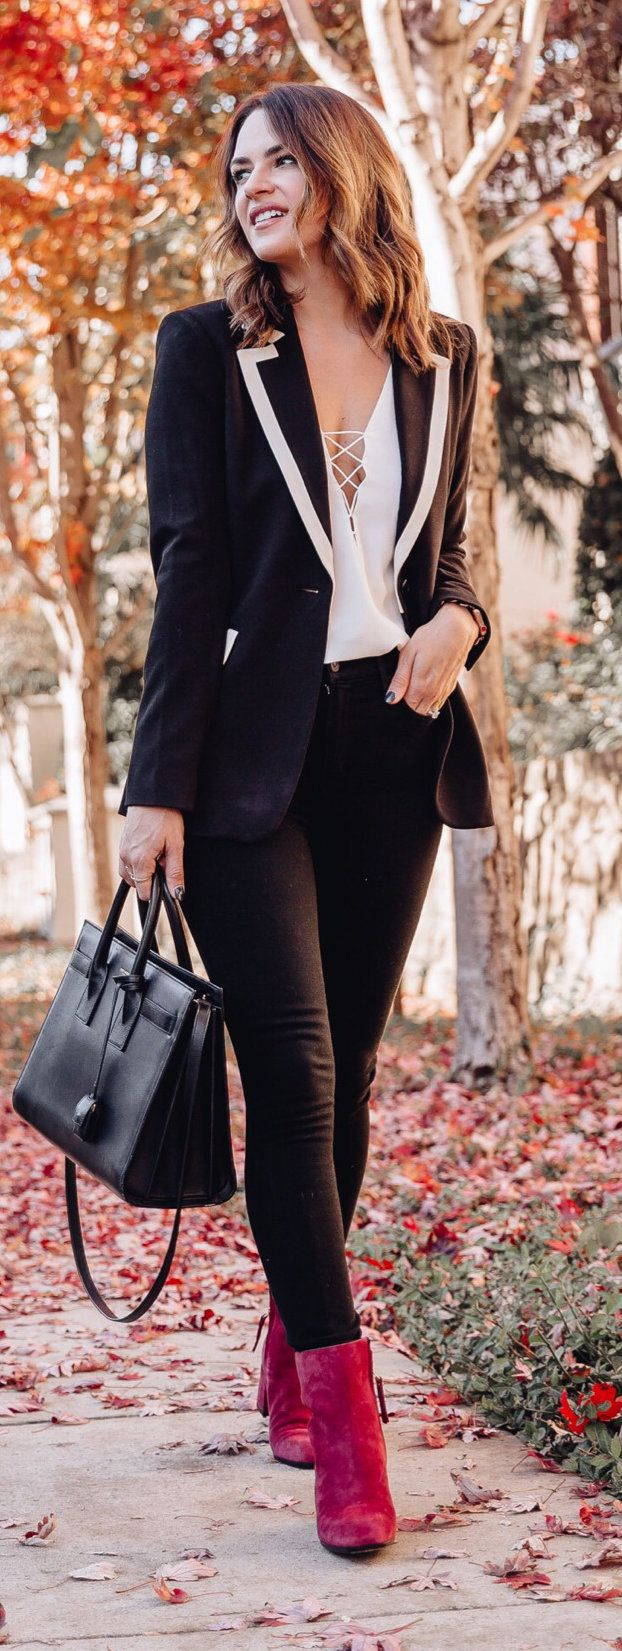 black peaked lapel suit jacket